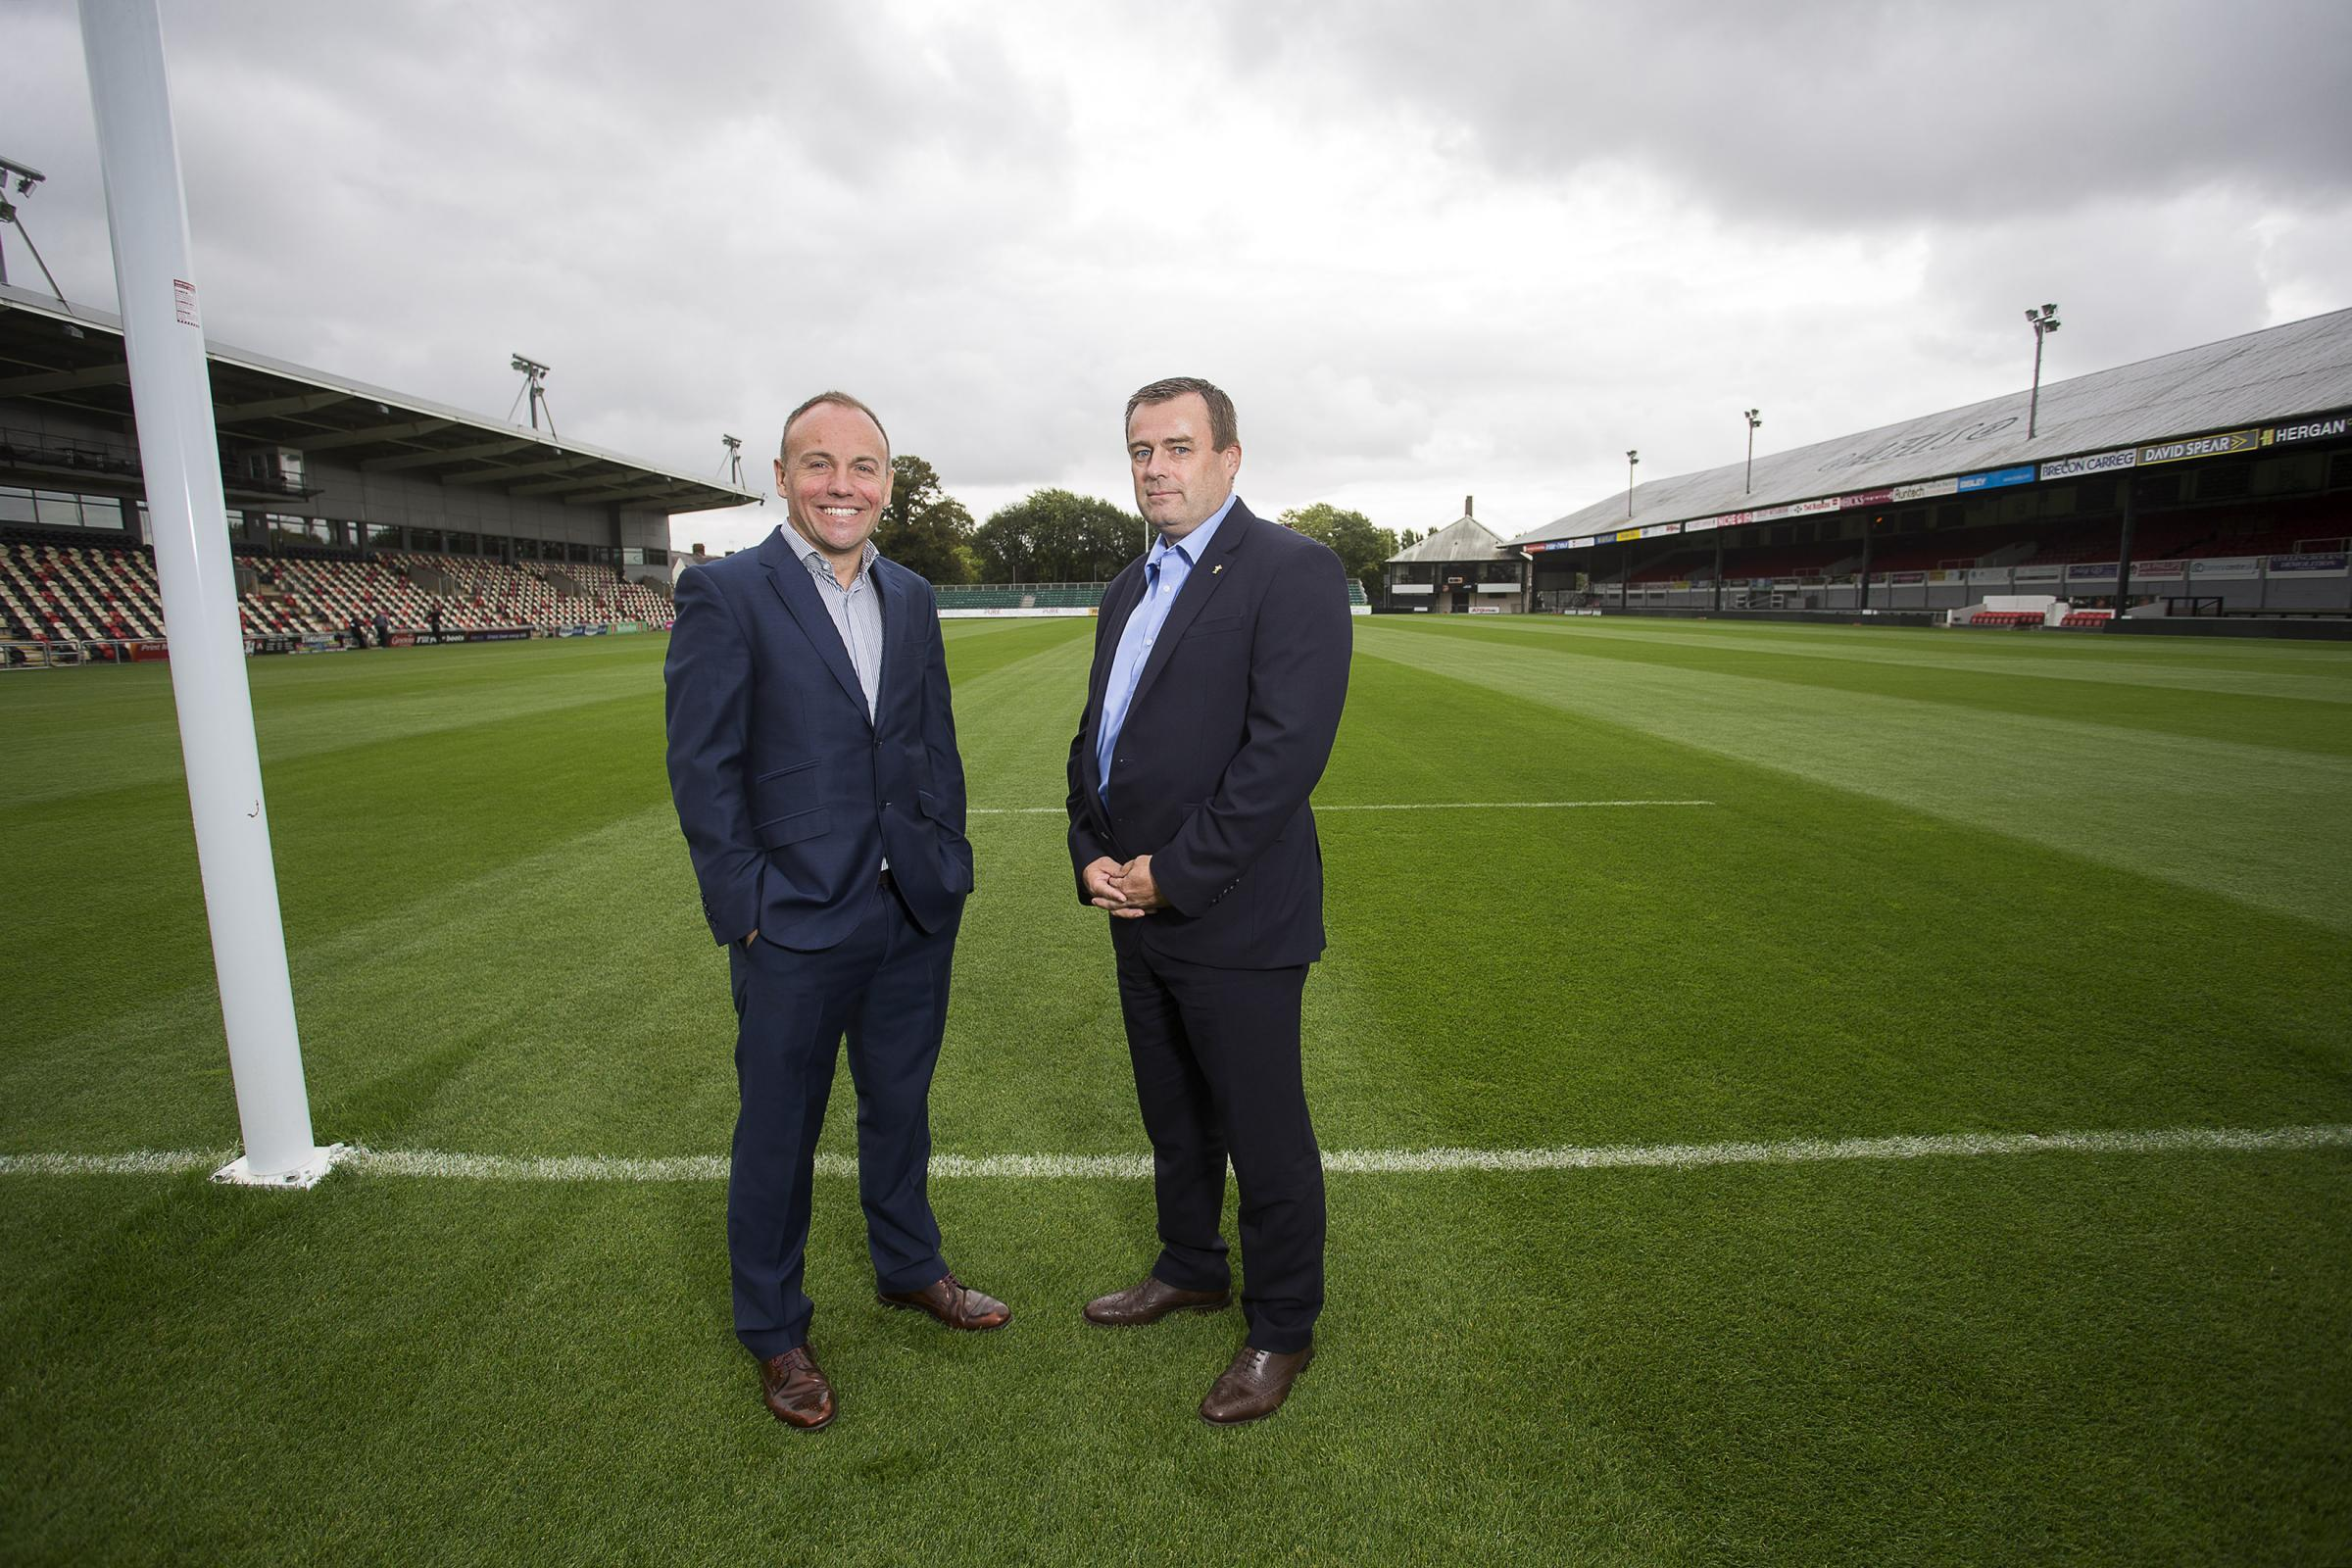 APPOINTMENT: New Dragons chairman David Buttress with Welsh Rugby Union chief executive Martyn Phillips